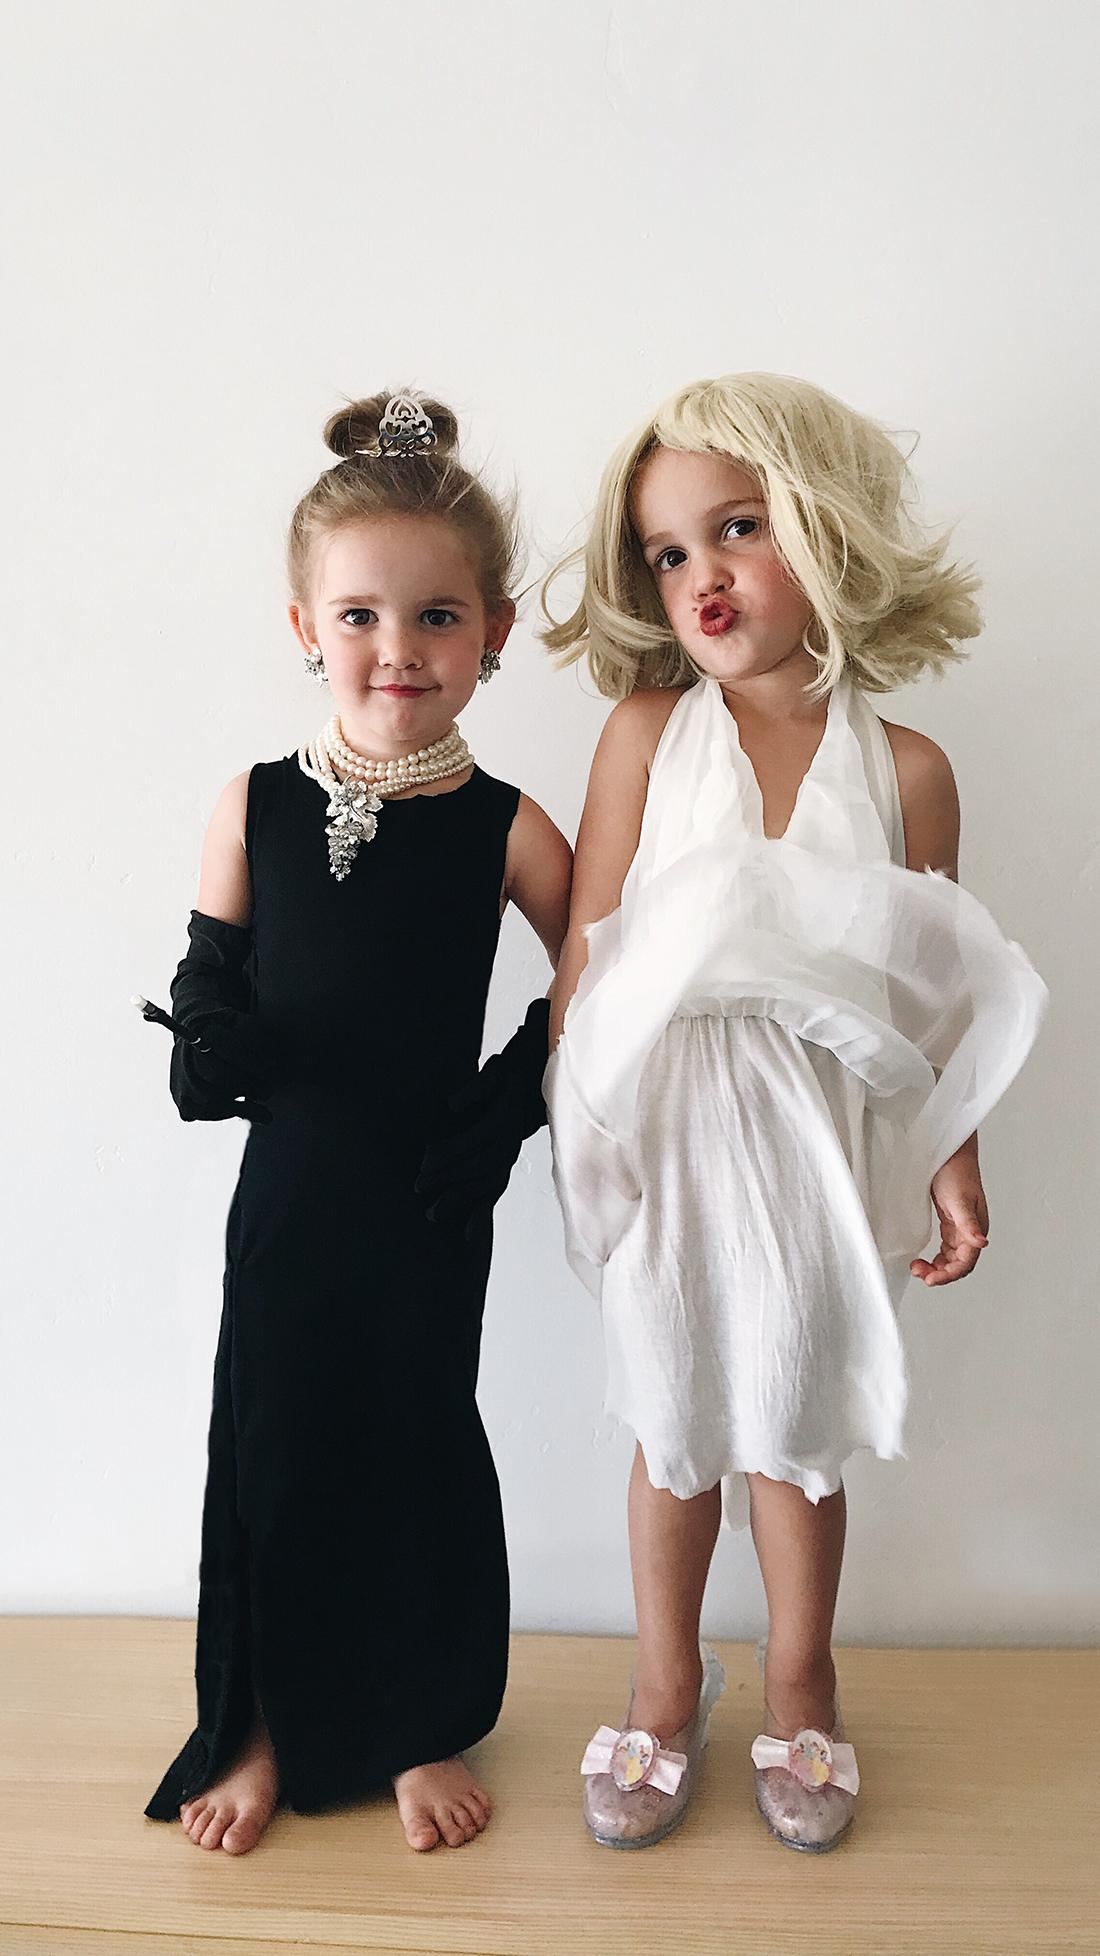 Let's play dress-up! Emma and Mila as Audrey Hepburn and Marilyn Monroe. (Photo courtesy of K.C. Stauffer)